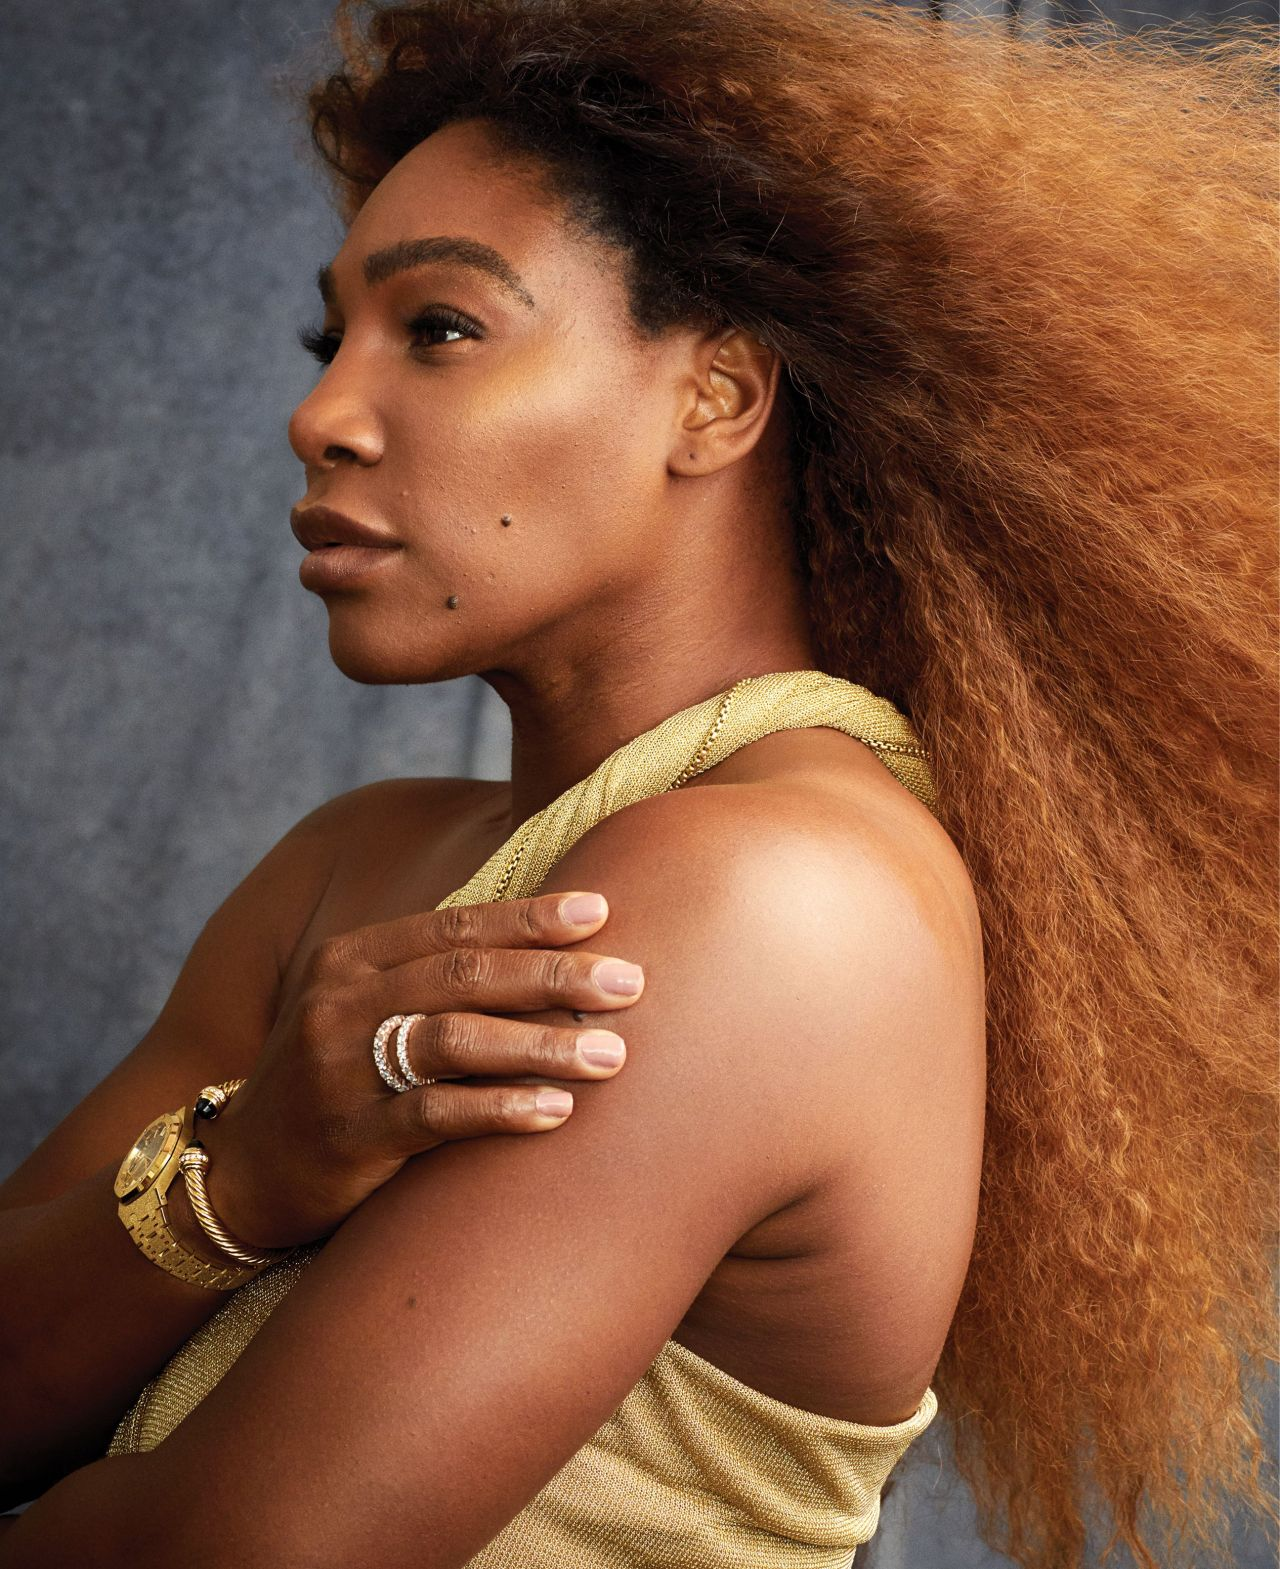 Serena Williams – Harper's Bazaar August 2019 Cover and Photos